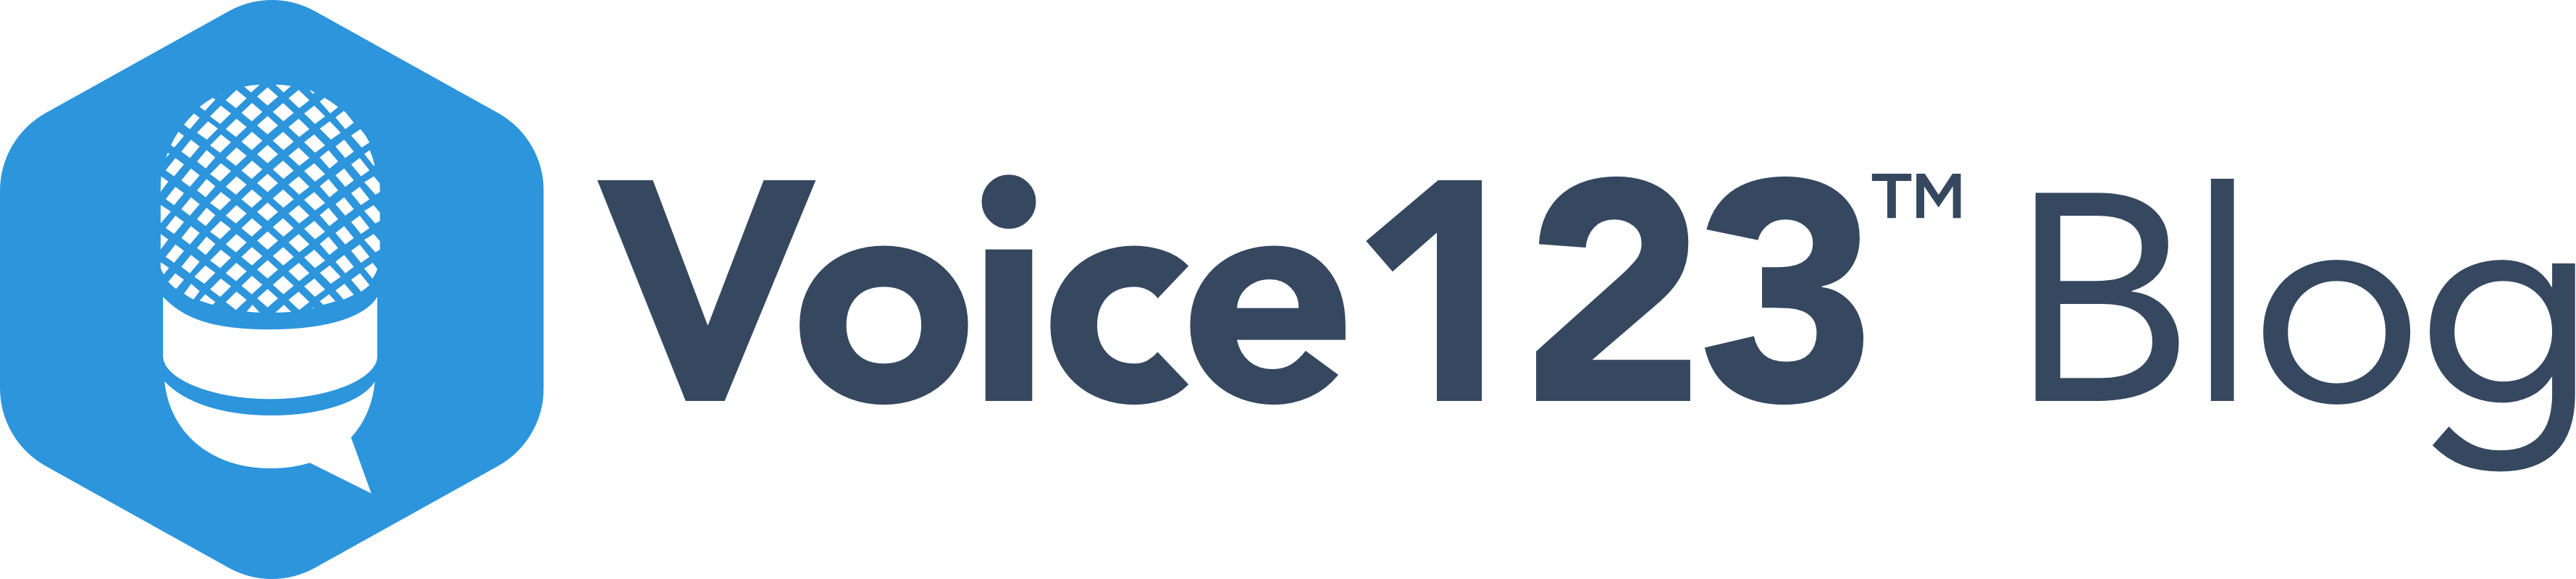 Voice123 blog logo